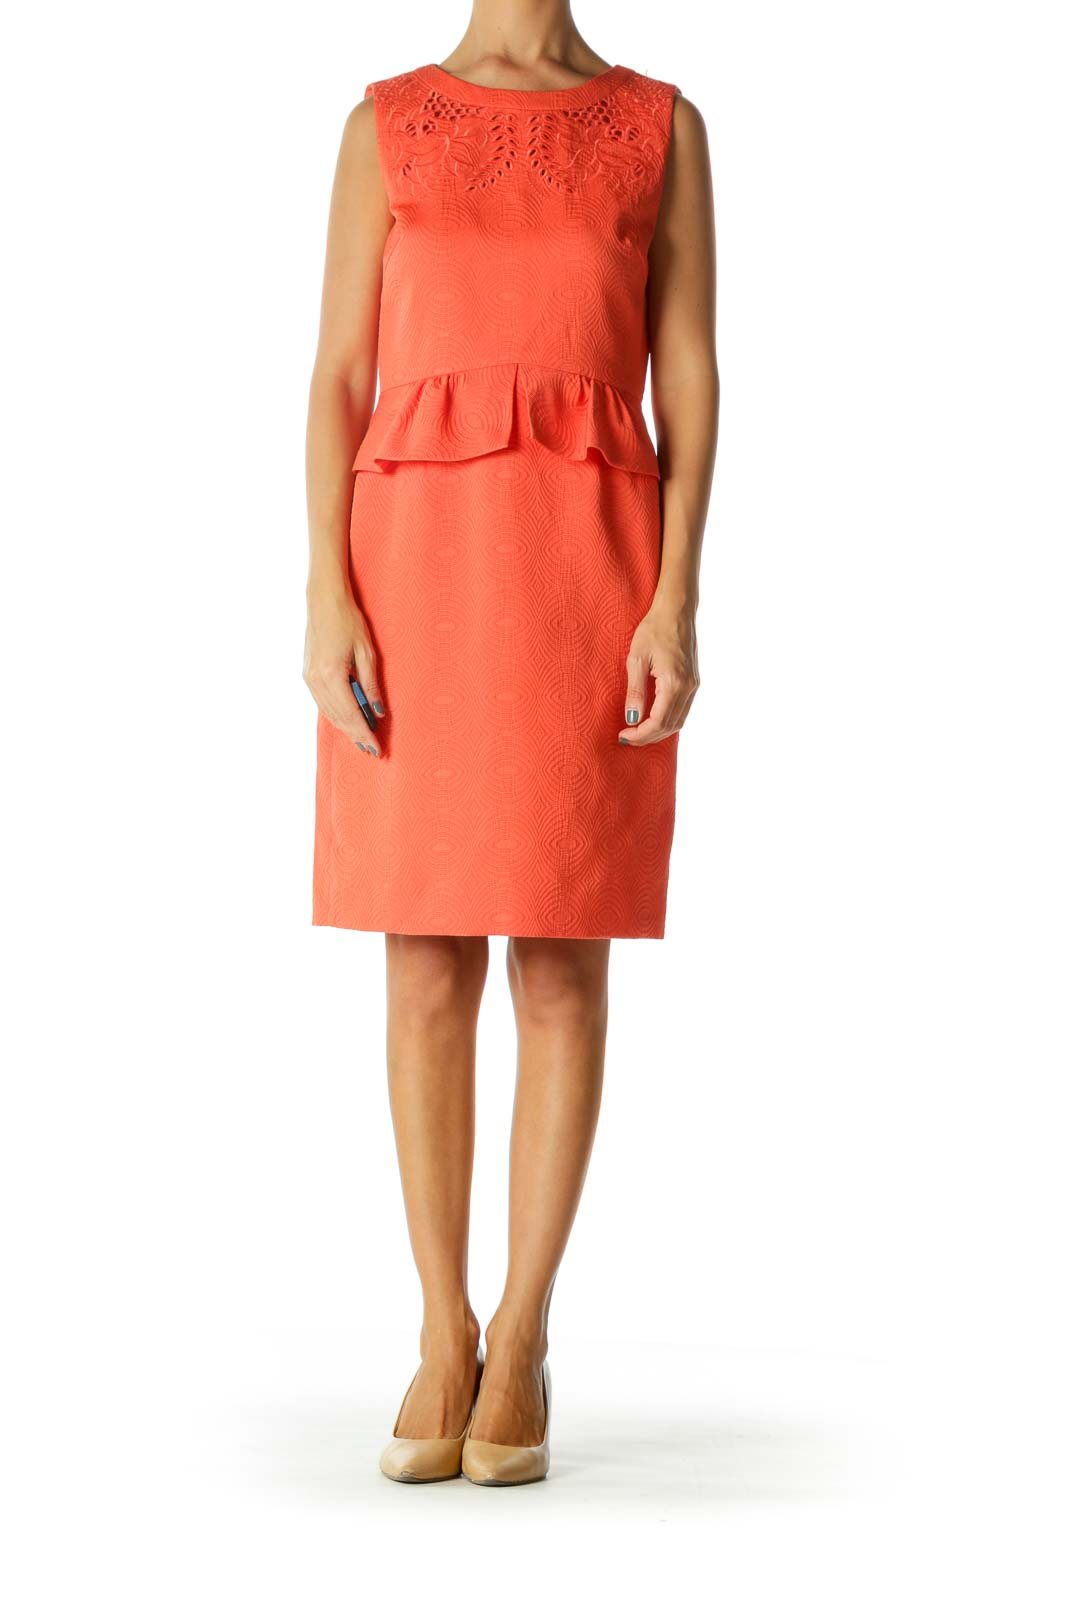 Orange Eyelet Textured Pattern A-Line Knit Dress